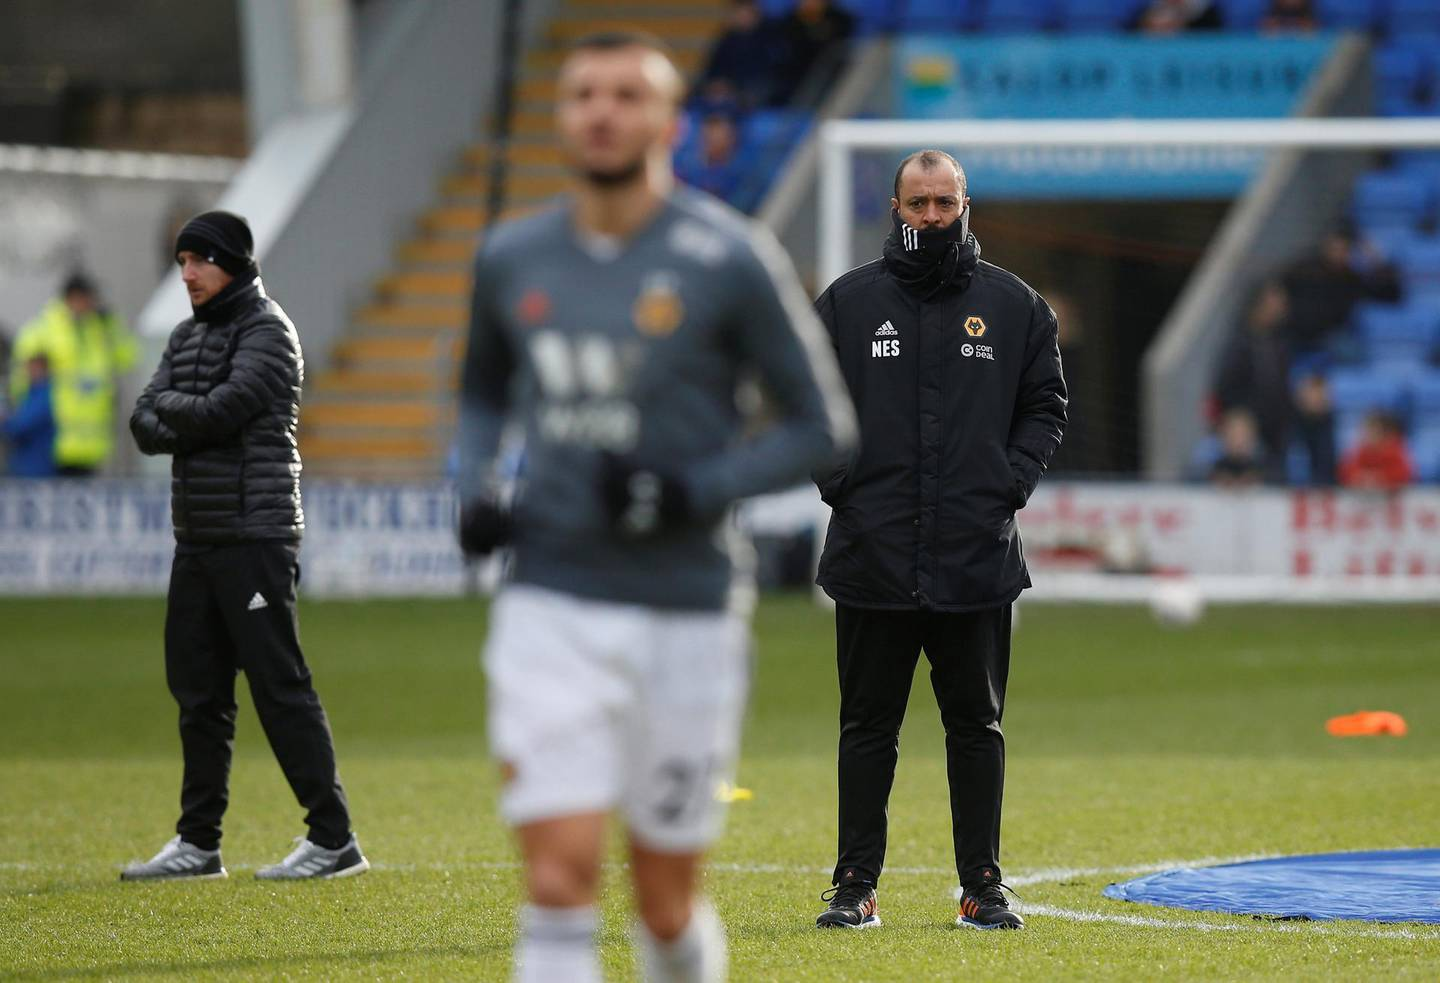 Soccer Football - FA Cup Fourth Round - Shrewsbury Town v Wolverhampton Wanderers  - Montgomery Waters Meadow, Shrewsbury, Britain - January 26, 2019  Wolverhampton Wanderers manager Nuno Espirito Santo looks on during the warm up before the match   REUTERS/Andrew Yates